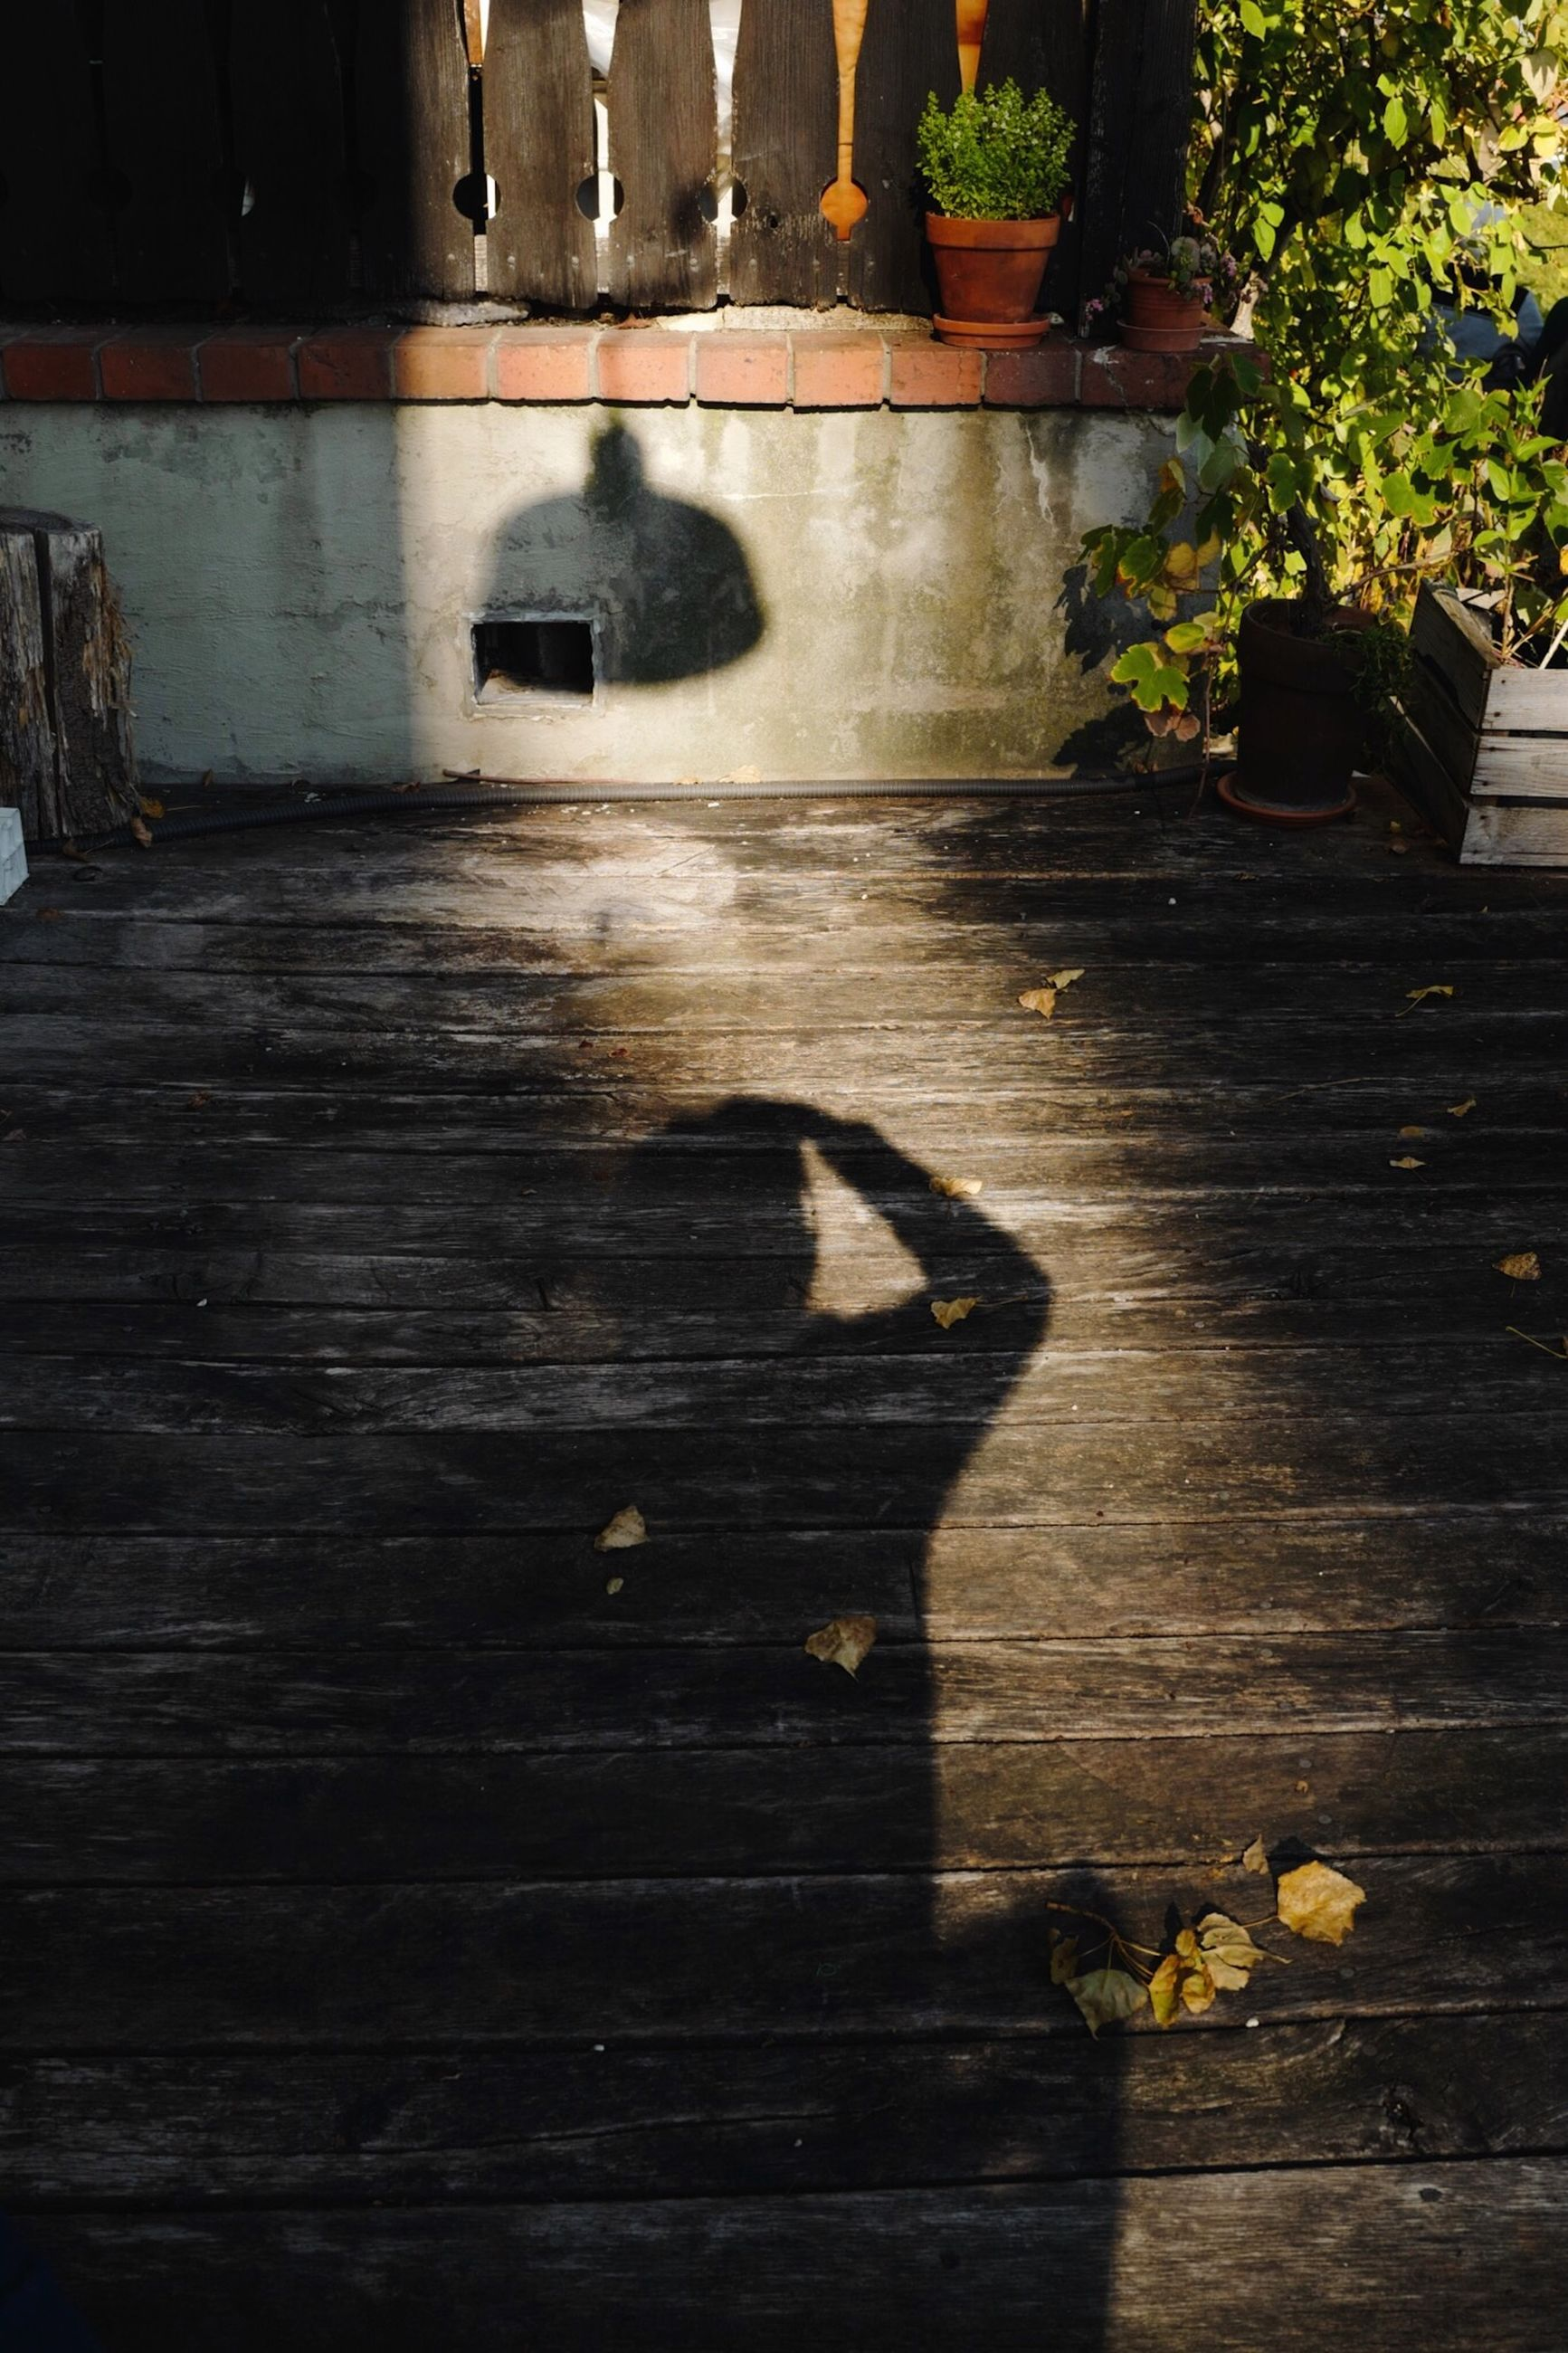 shadow, sunlight, nature, no people, day, architecture, built structure, wood - material, outdoors, building exterior, wall - building feature, plant, flooring, footpath, wood, domestic cat, cat, one animal, focus on shadow